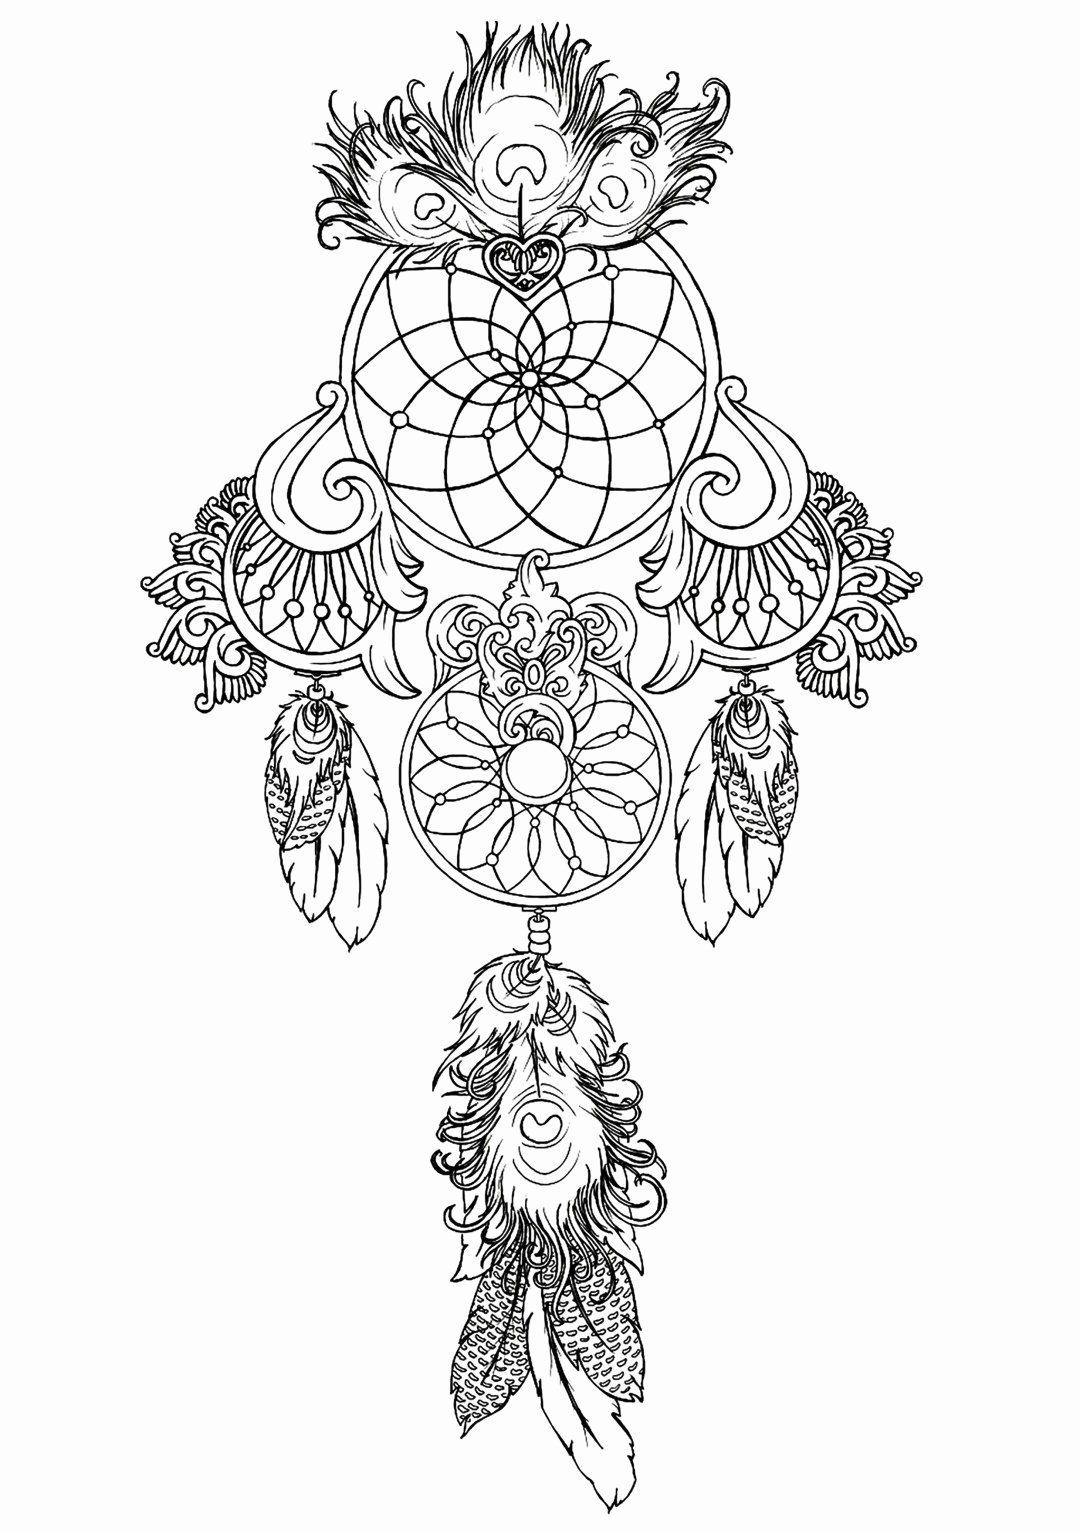 Coloring Pictures For Adults Beautiful Free Line Coloring Pages For Adults Creatively In 2020 Dream Catcher Coloring Pages Mandala Coloring Pages Dream Catcher Tattoo